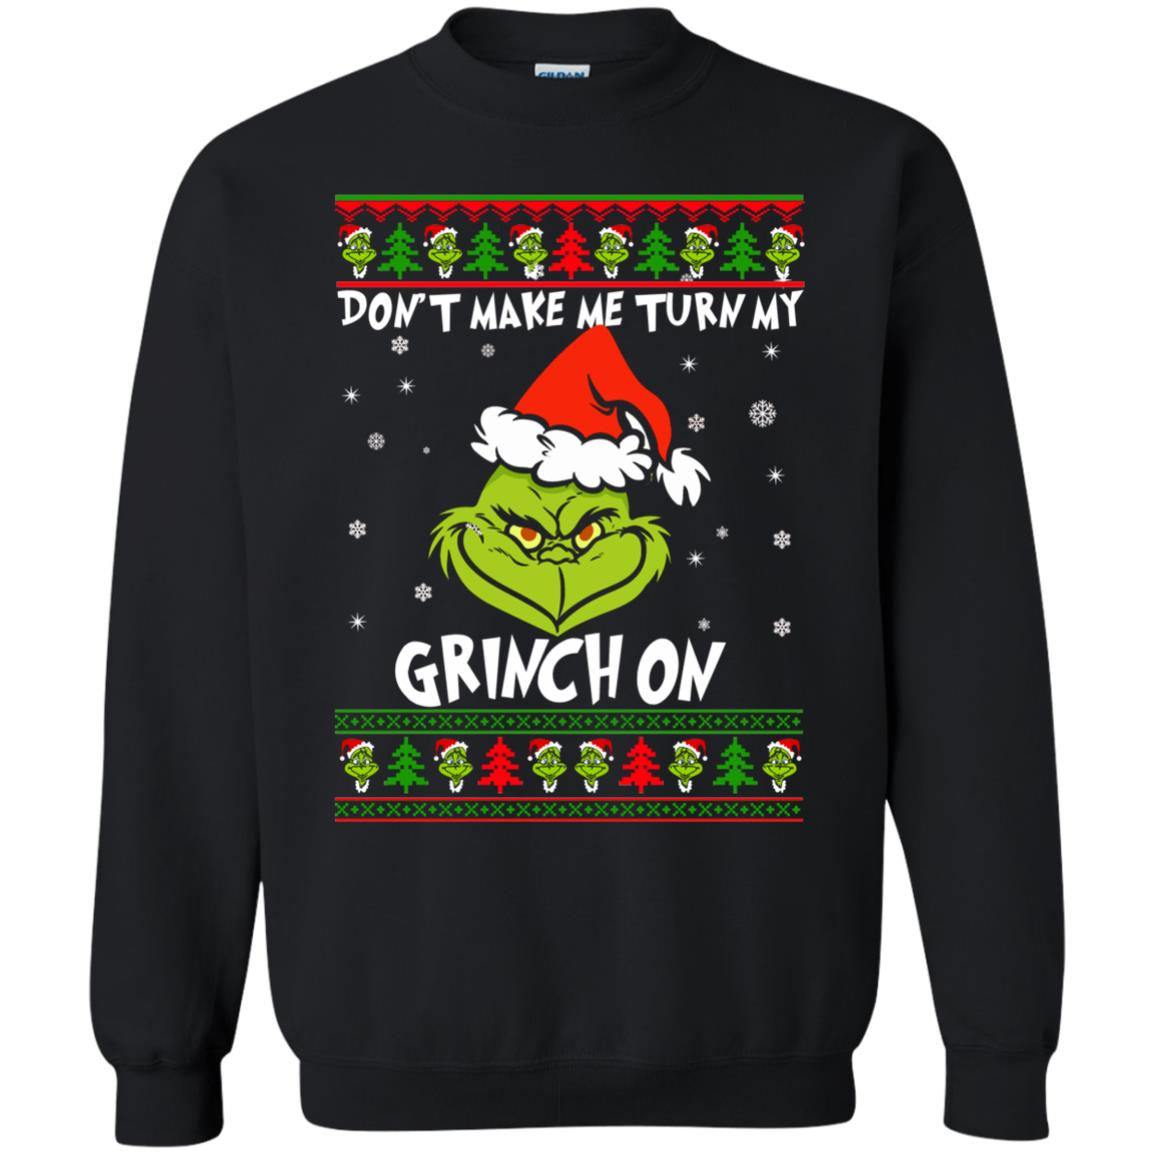 Grinch Christmas Sweater.Don T Make Me Turn My Grinch On Christmas Sweater Shirt